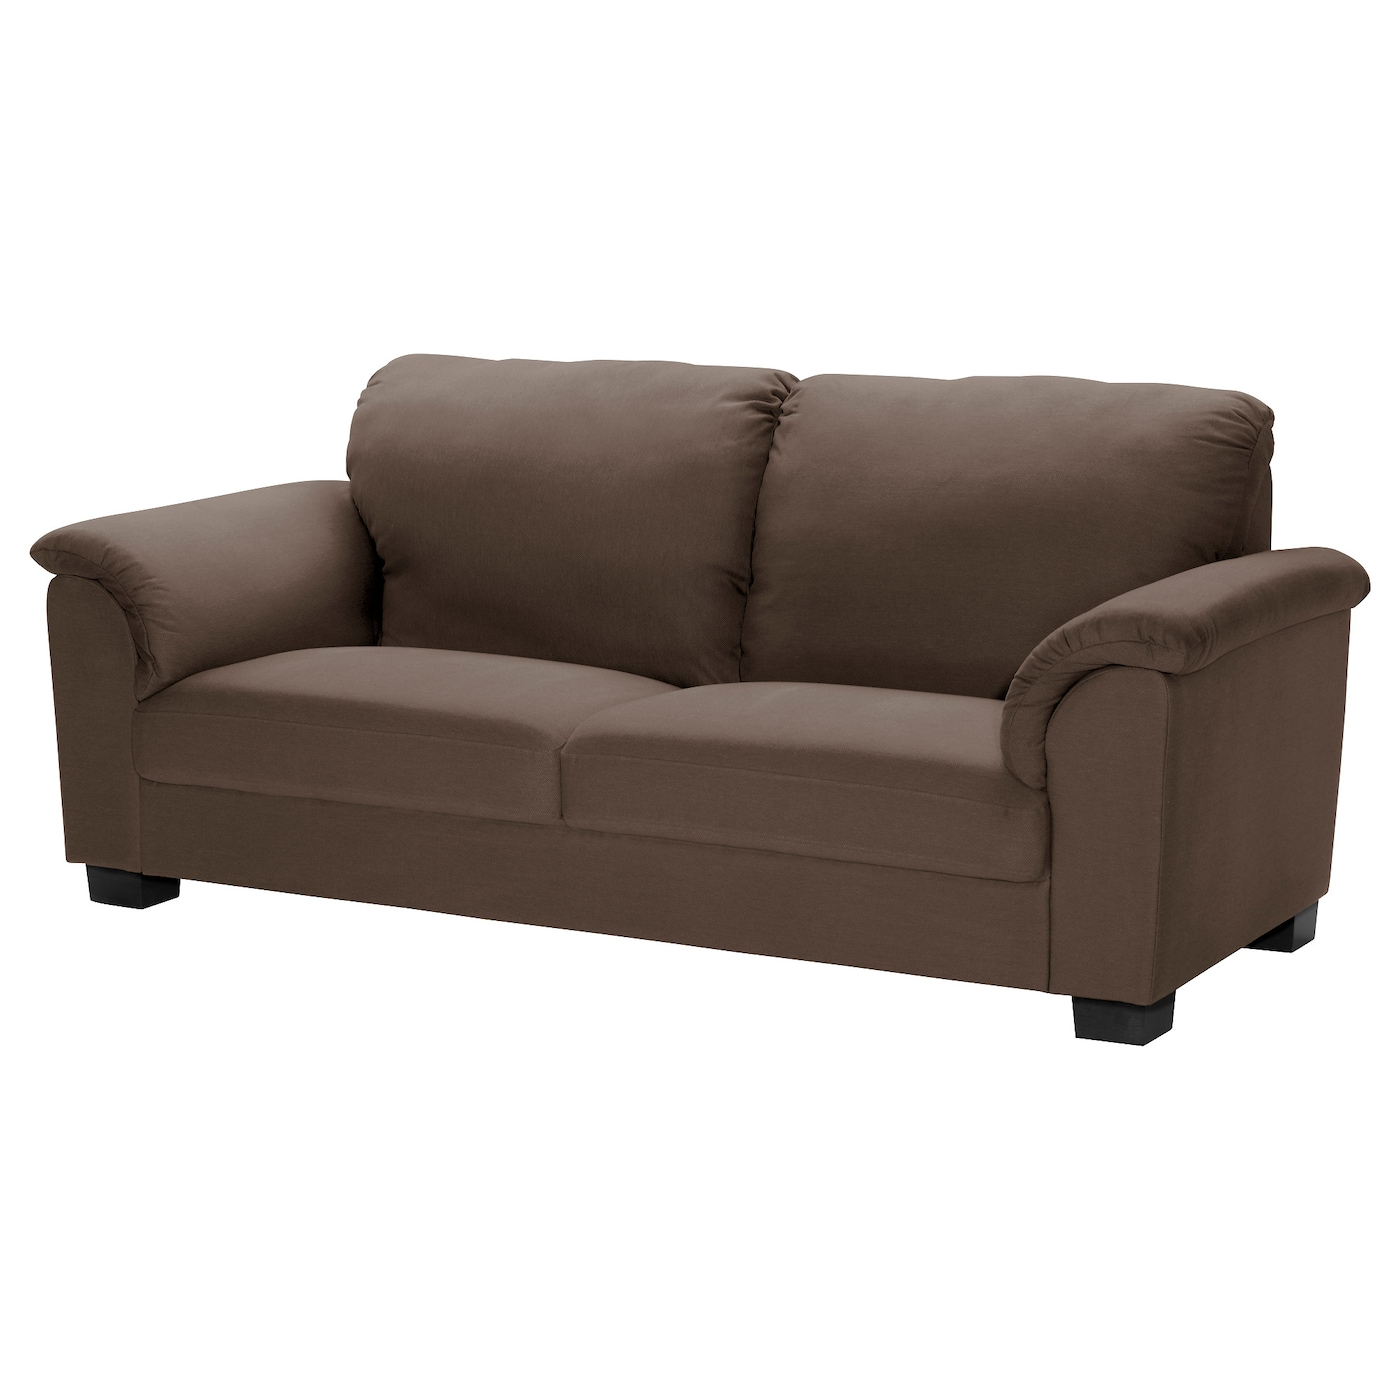 IKEA TIDAFORS Three Seat Sofa The High Back Gives Good Support For Your  Neck And